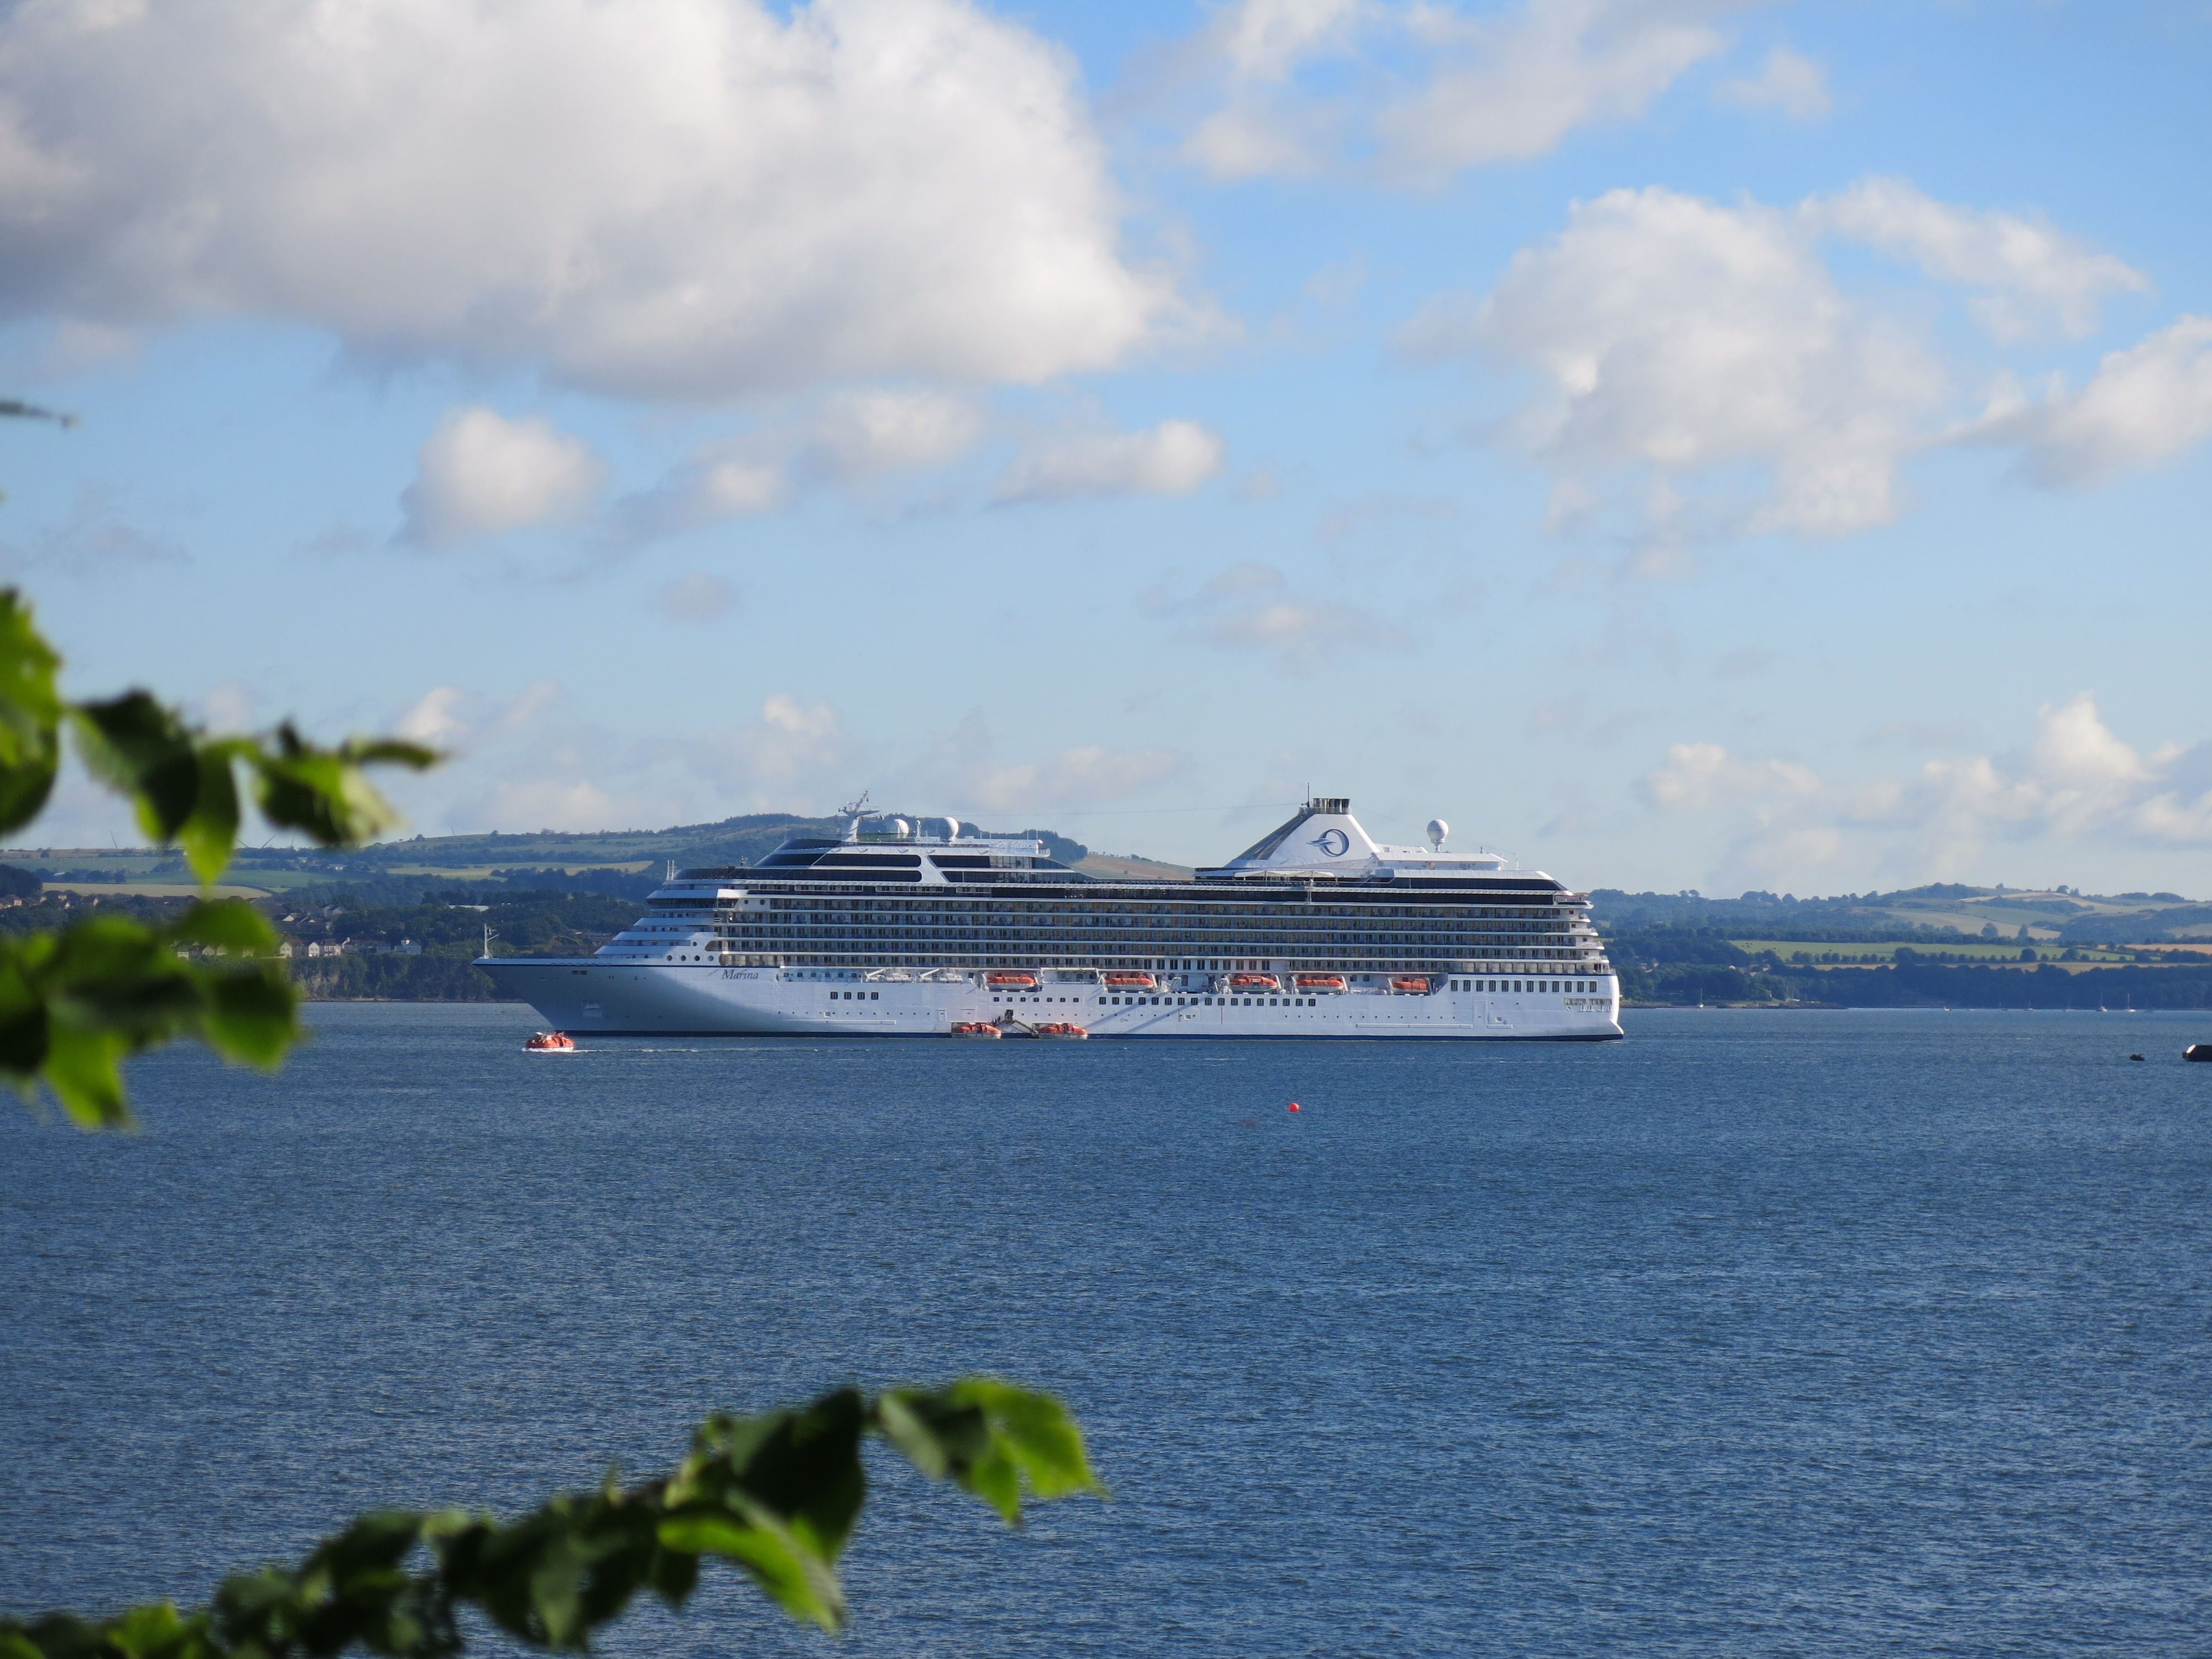 Our Private Day Tours starting from Cruise Ships arriving at Queensferry Edinburgh